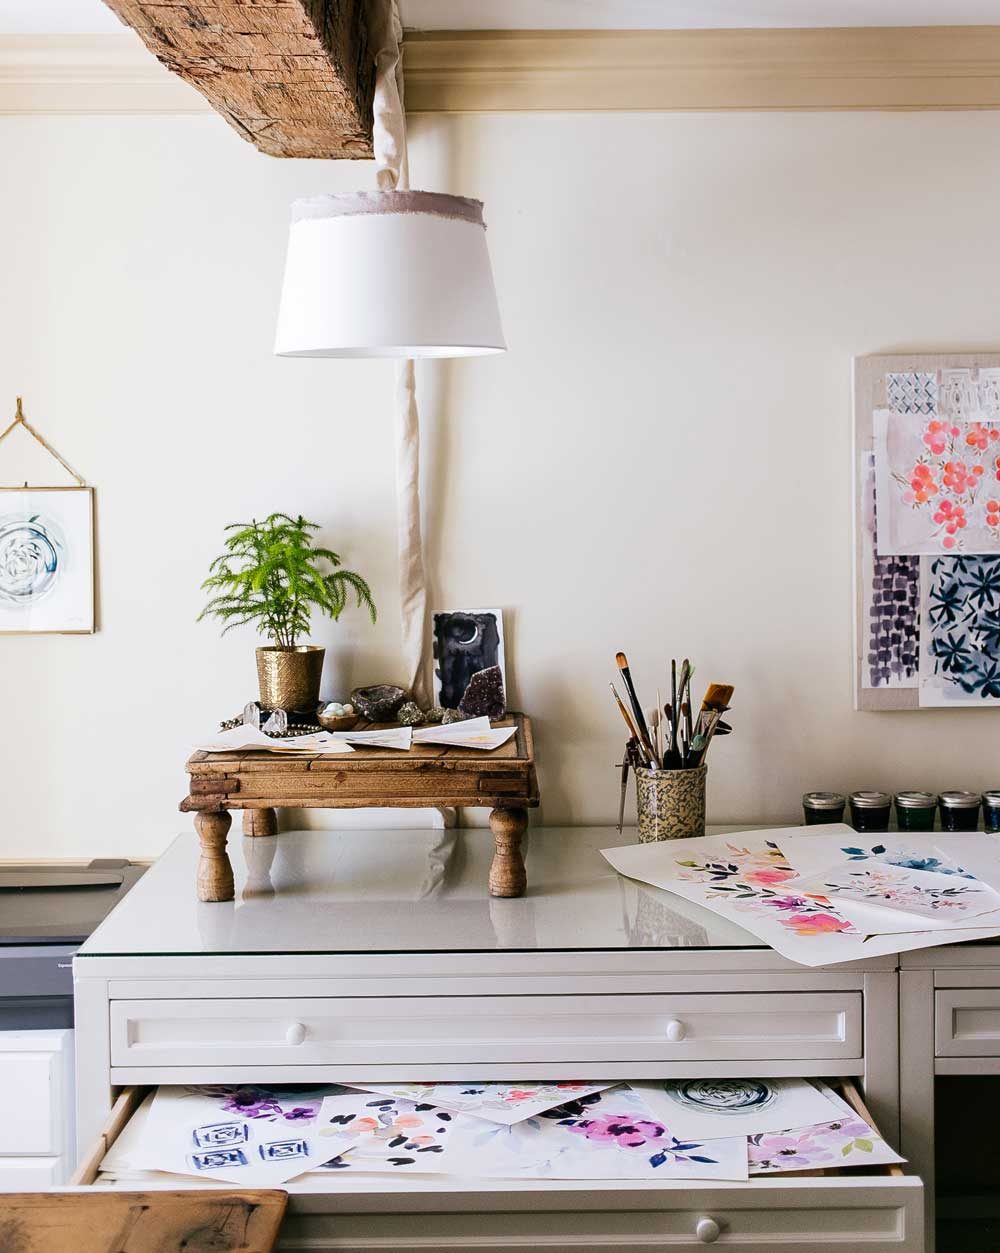 Studio Tour: Stephanie Ryan Art + Alchemy, on Design*Sponge